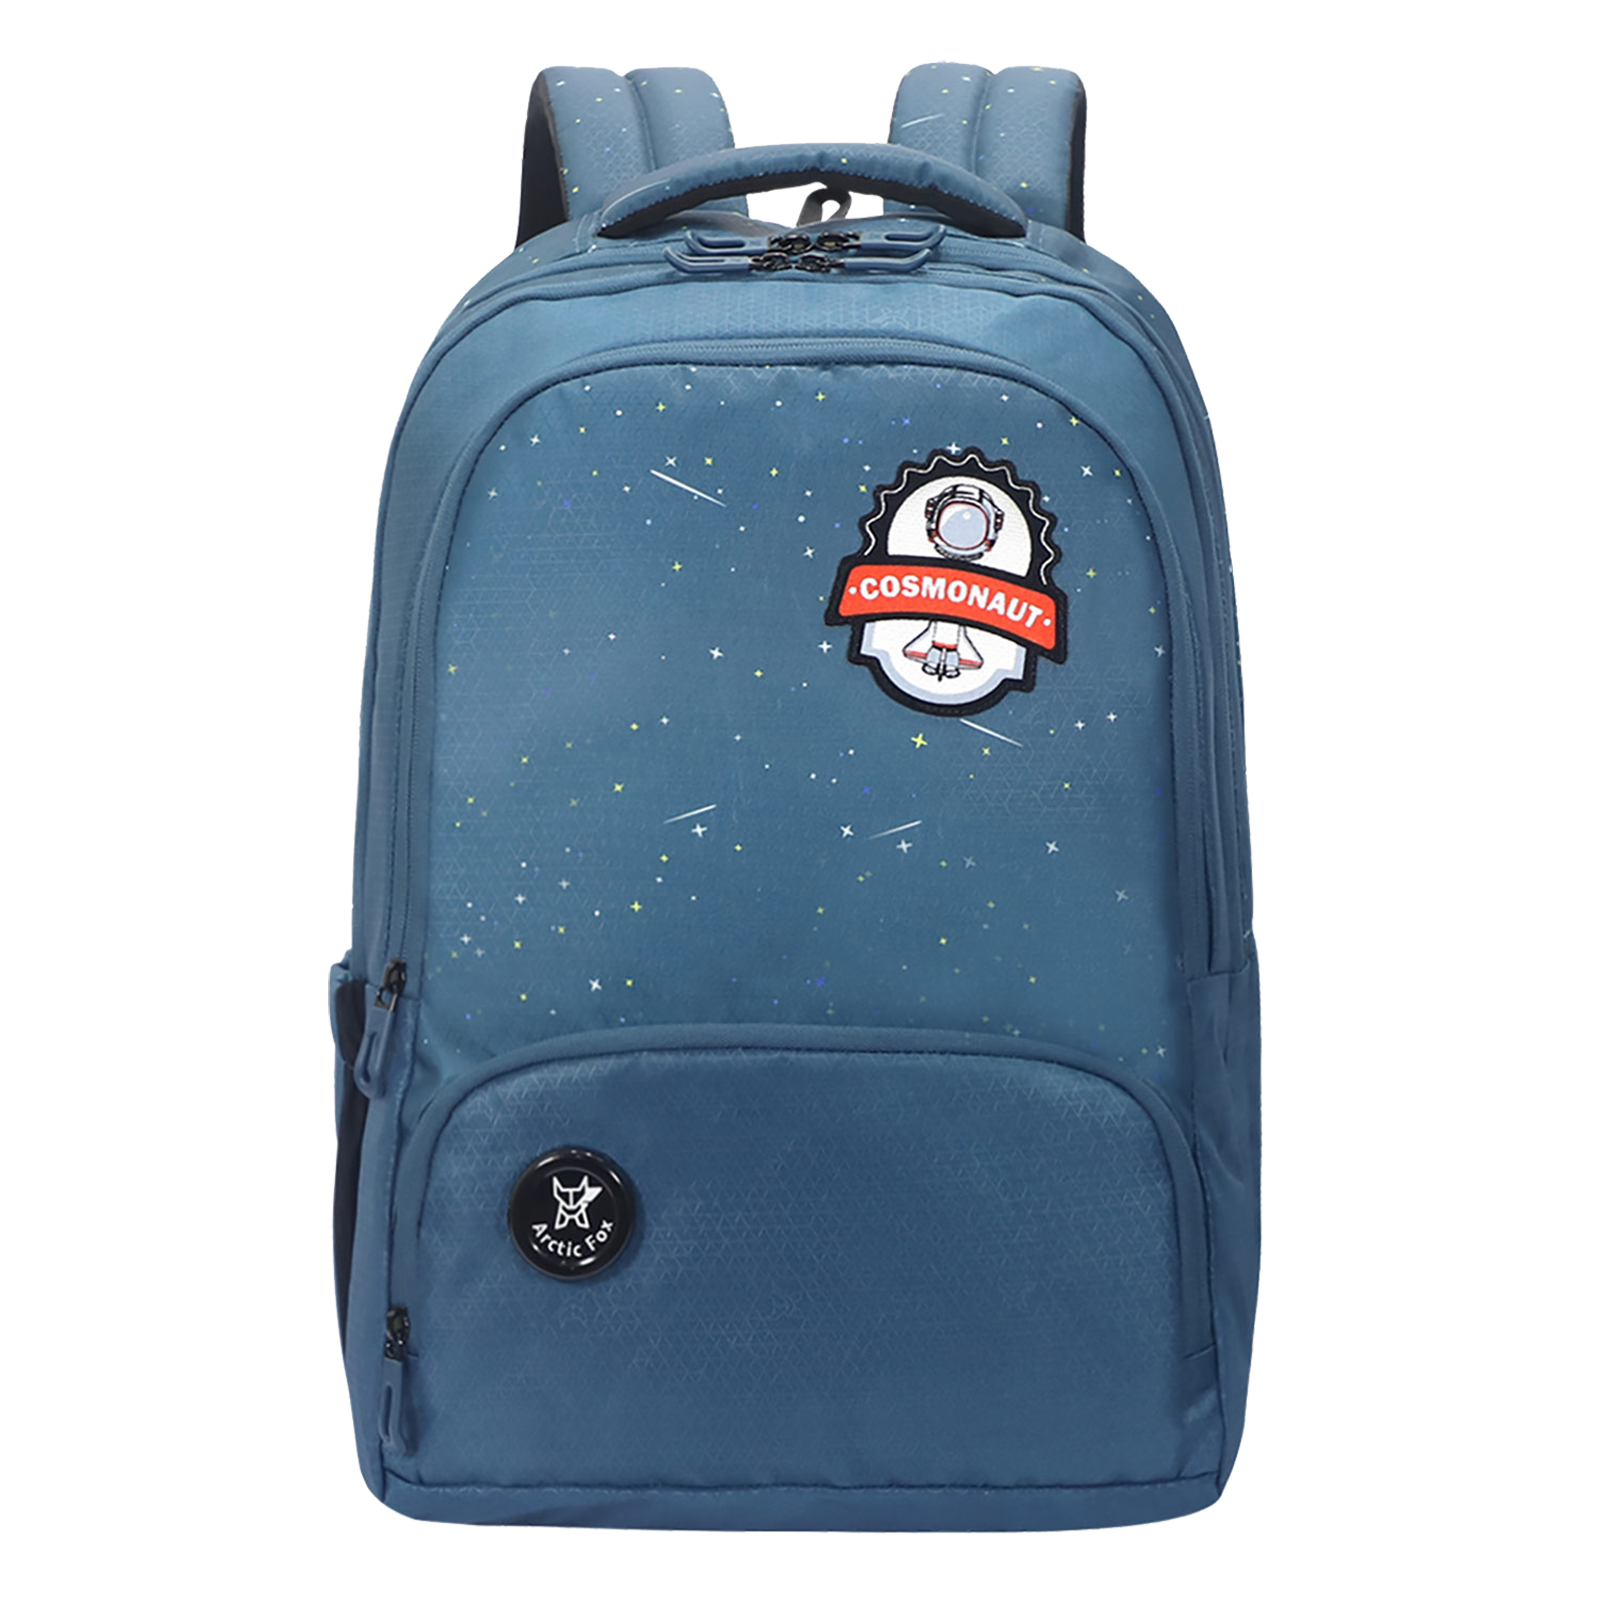 Arctic Fox Cosmonaut 35 Litres PU Coated Polyester Backpack (3 Spacious Compartments, FTEBPKDDVWZ081035, Deep Dive)_1